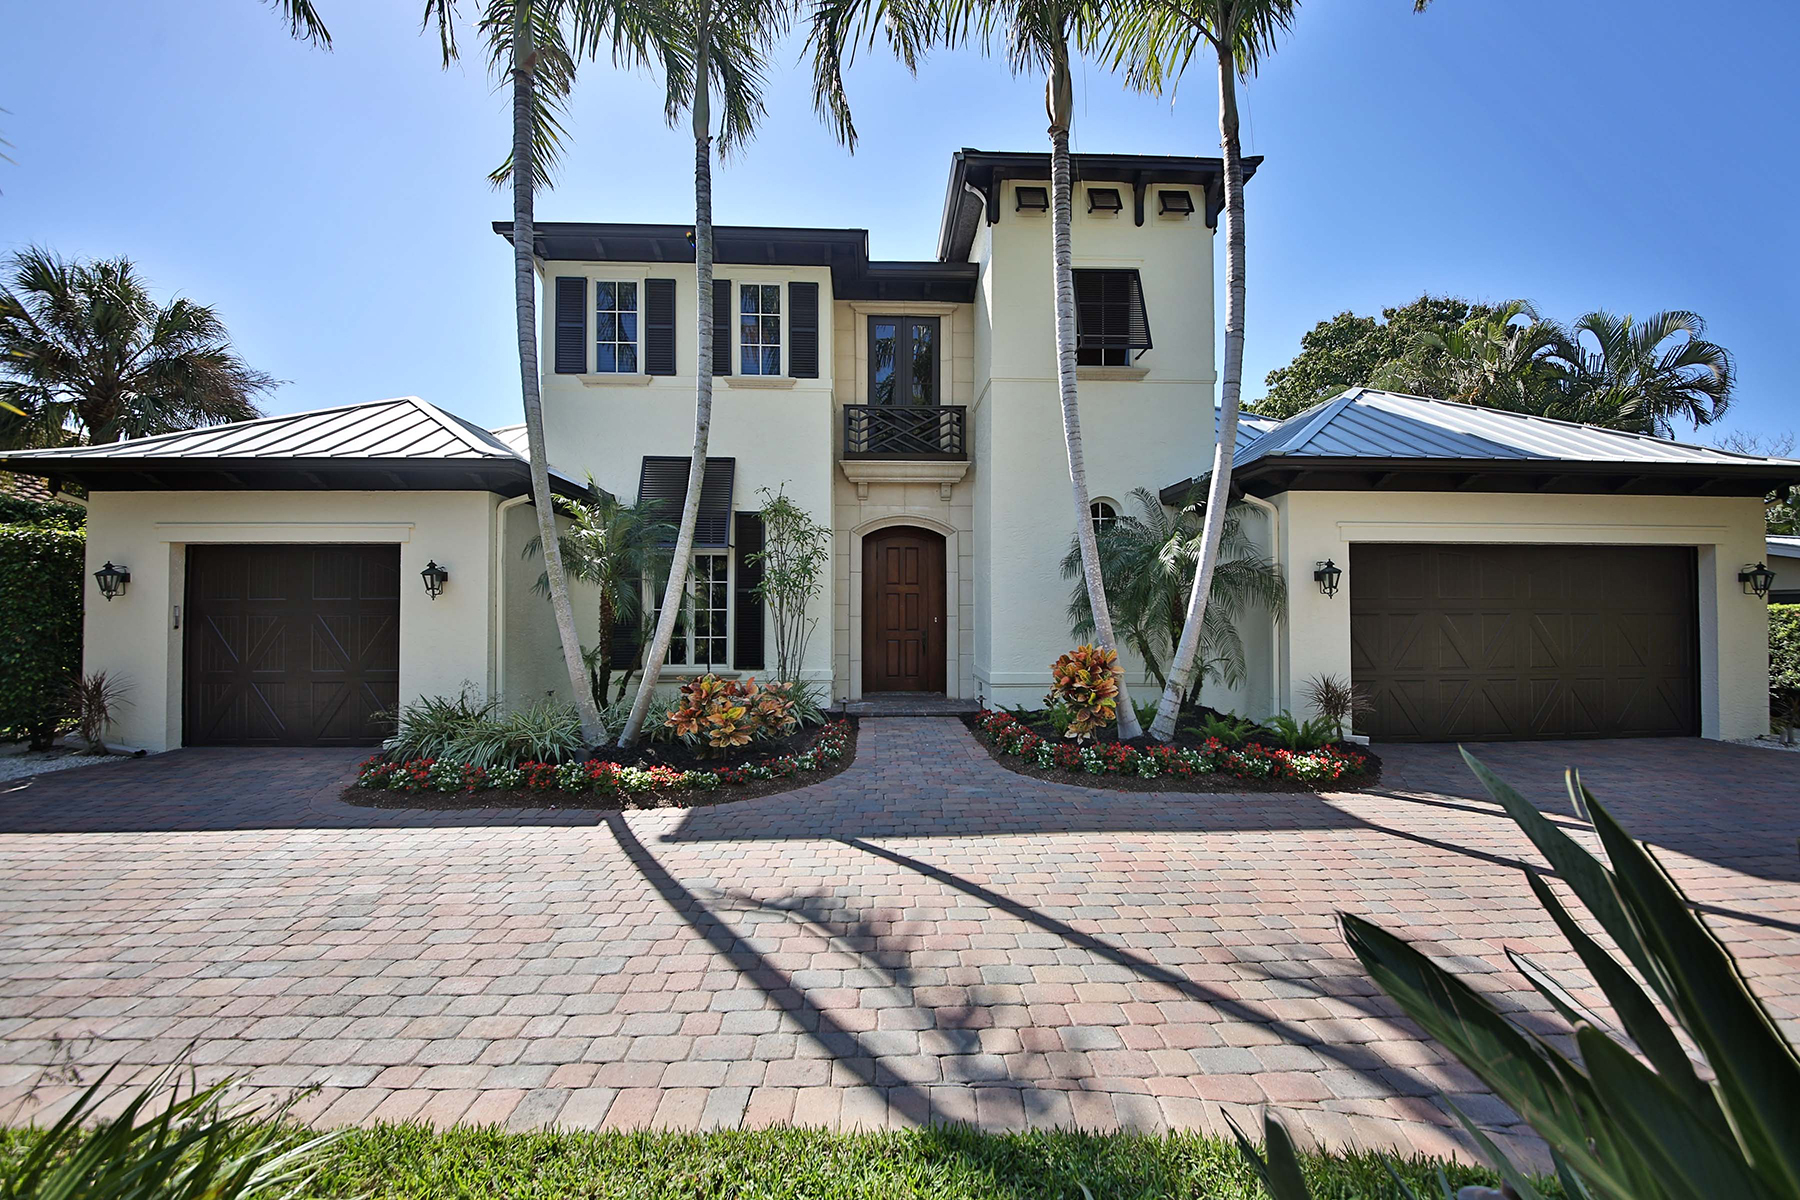 Single Family Home for Sale at OLDE NAPLES 596 6th Ave N, Naples, Florida 34102 United States